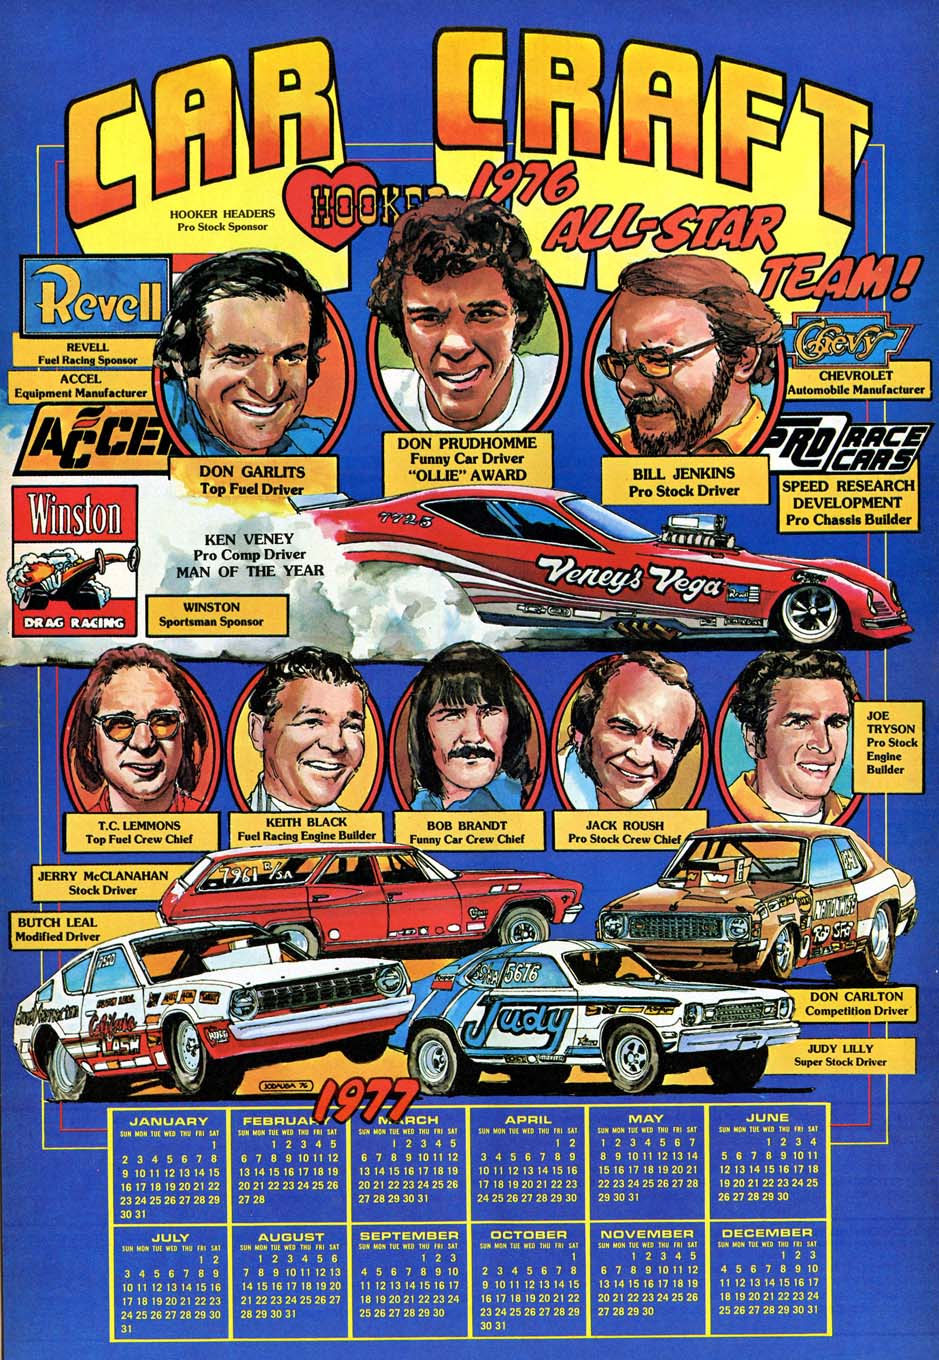 From the 1970s through the 1990s, Jodauga did several centerspread illustrations that featured the members of each year's Car Craft All-Star Drag Racing teams, including this example in 1976.